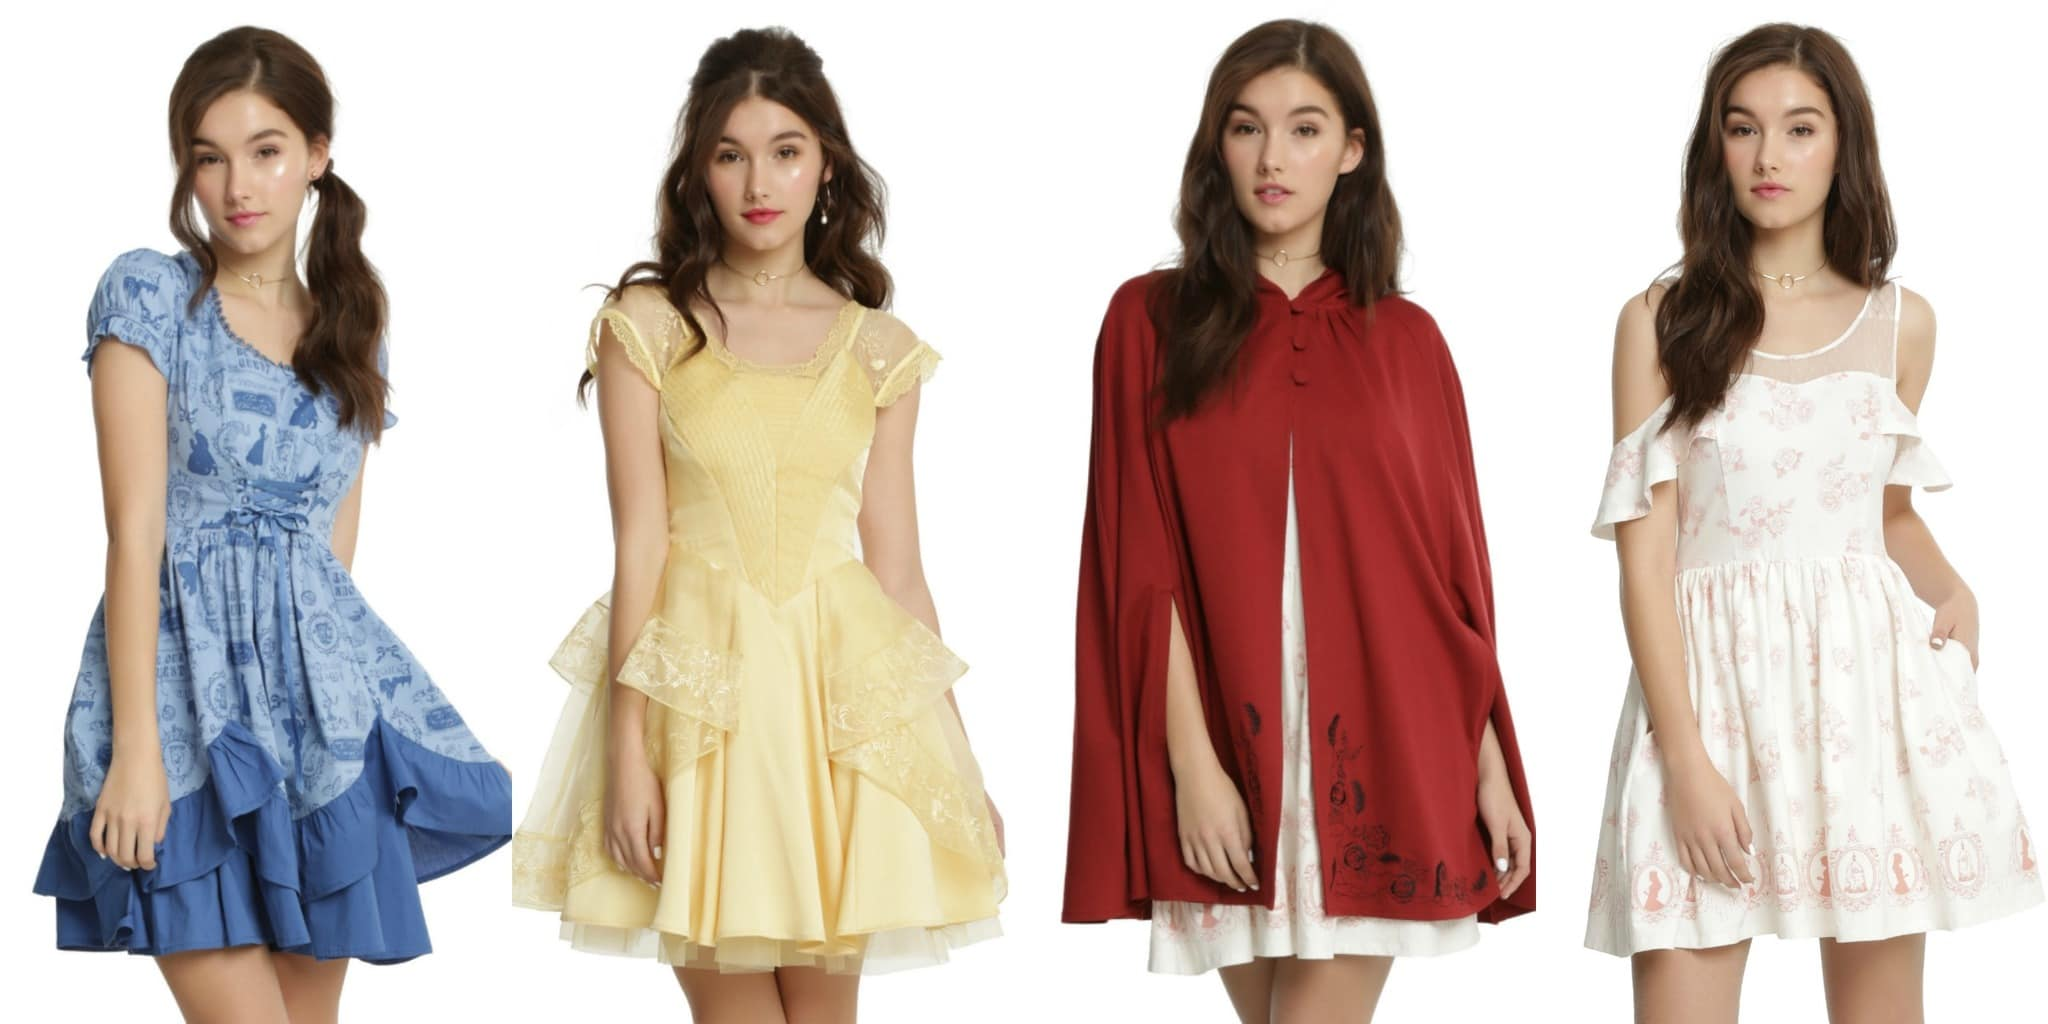 Beauty and the Beast clothing from Hot Topic - blue dress, yellow dress, red cape, white dress